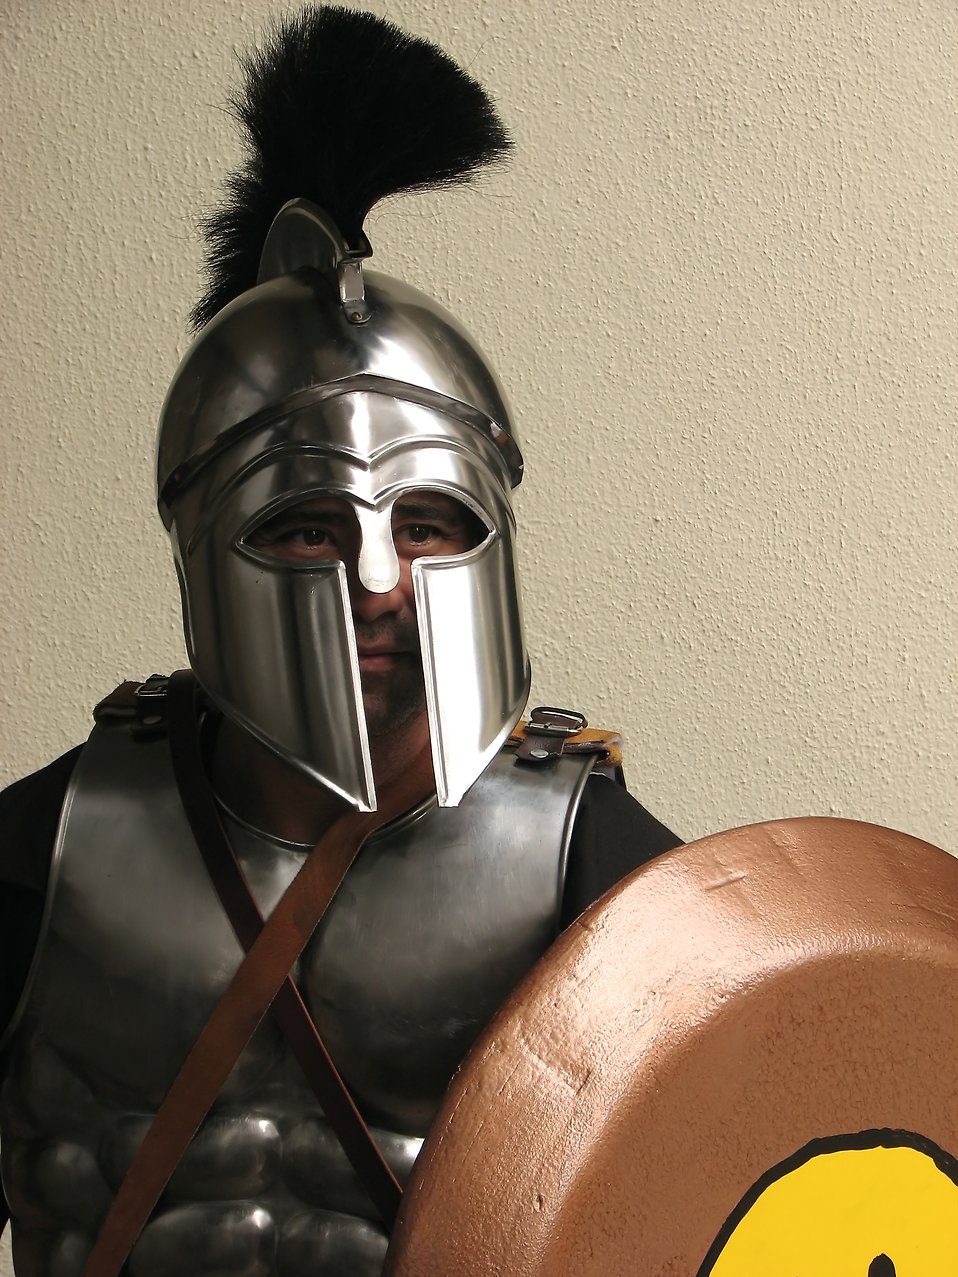 A man with a Spartan armor costume at Dragoncon 2009 in Atlanta, Georgia : Free Stock Photo